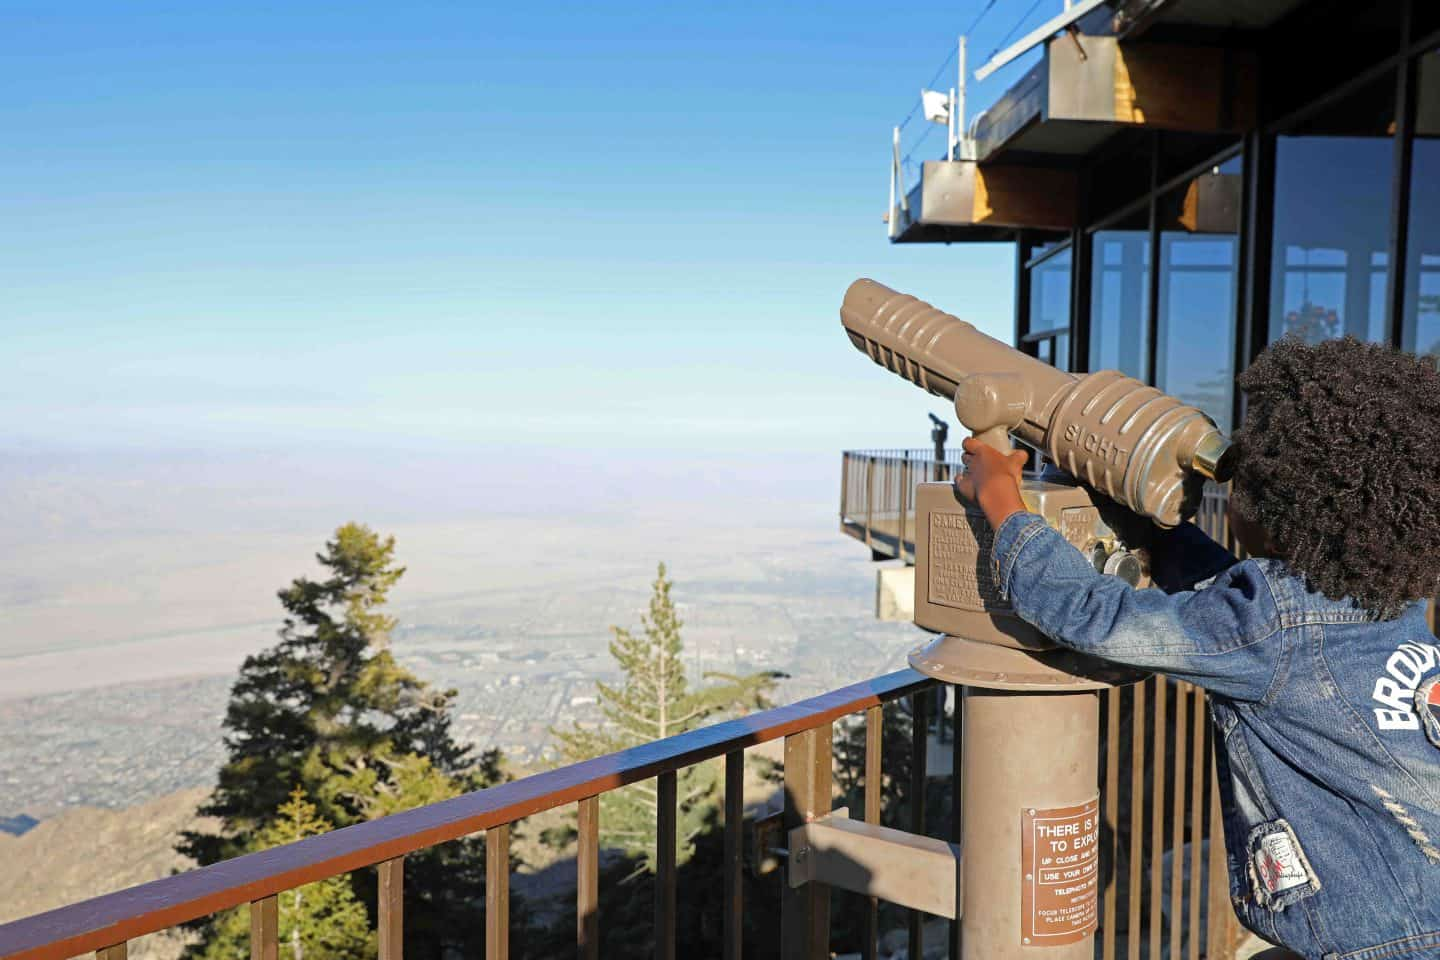 Viewing the distance through a telescope from the Palm Springs Aerial Tramway